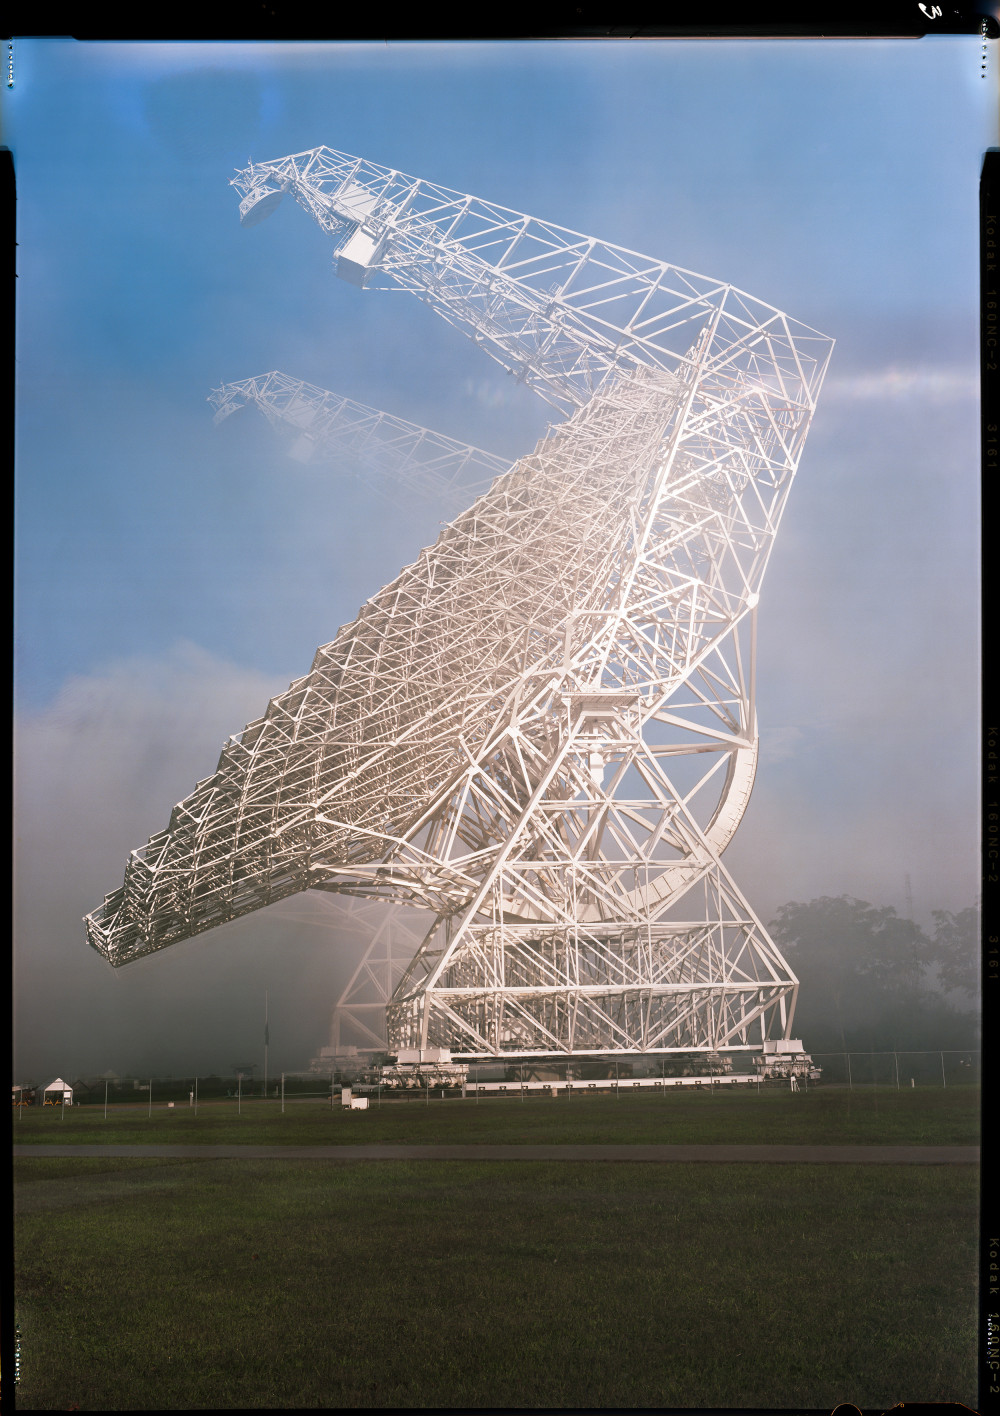 National Radio Astronomy Observatory at Green Bank, WV. Photo by Light & Noise, Inc. www.light-noise.com